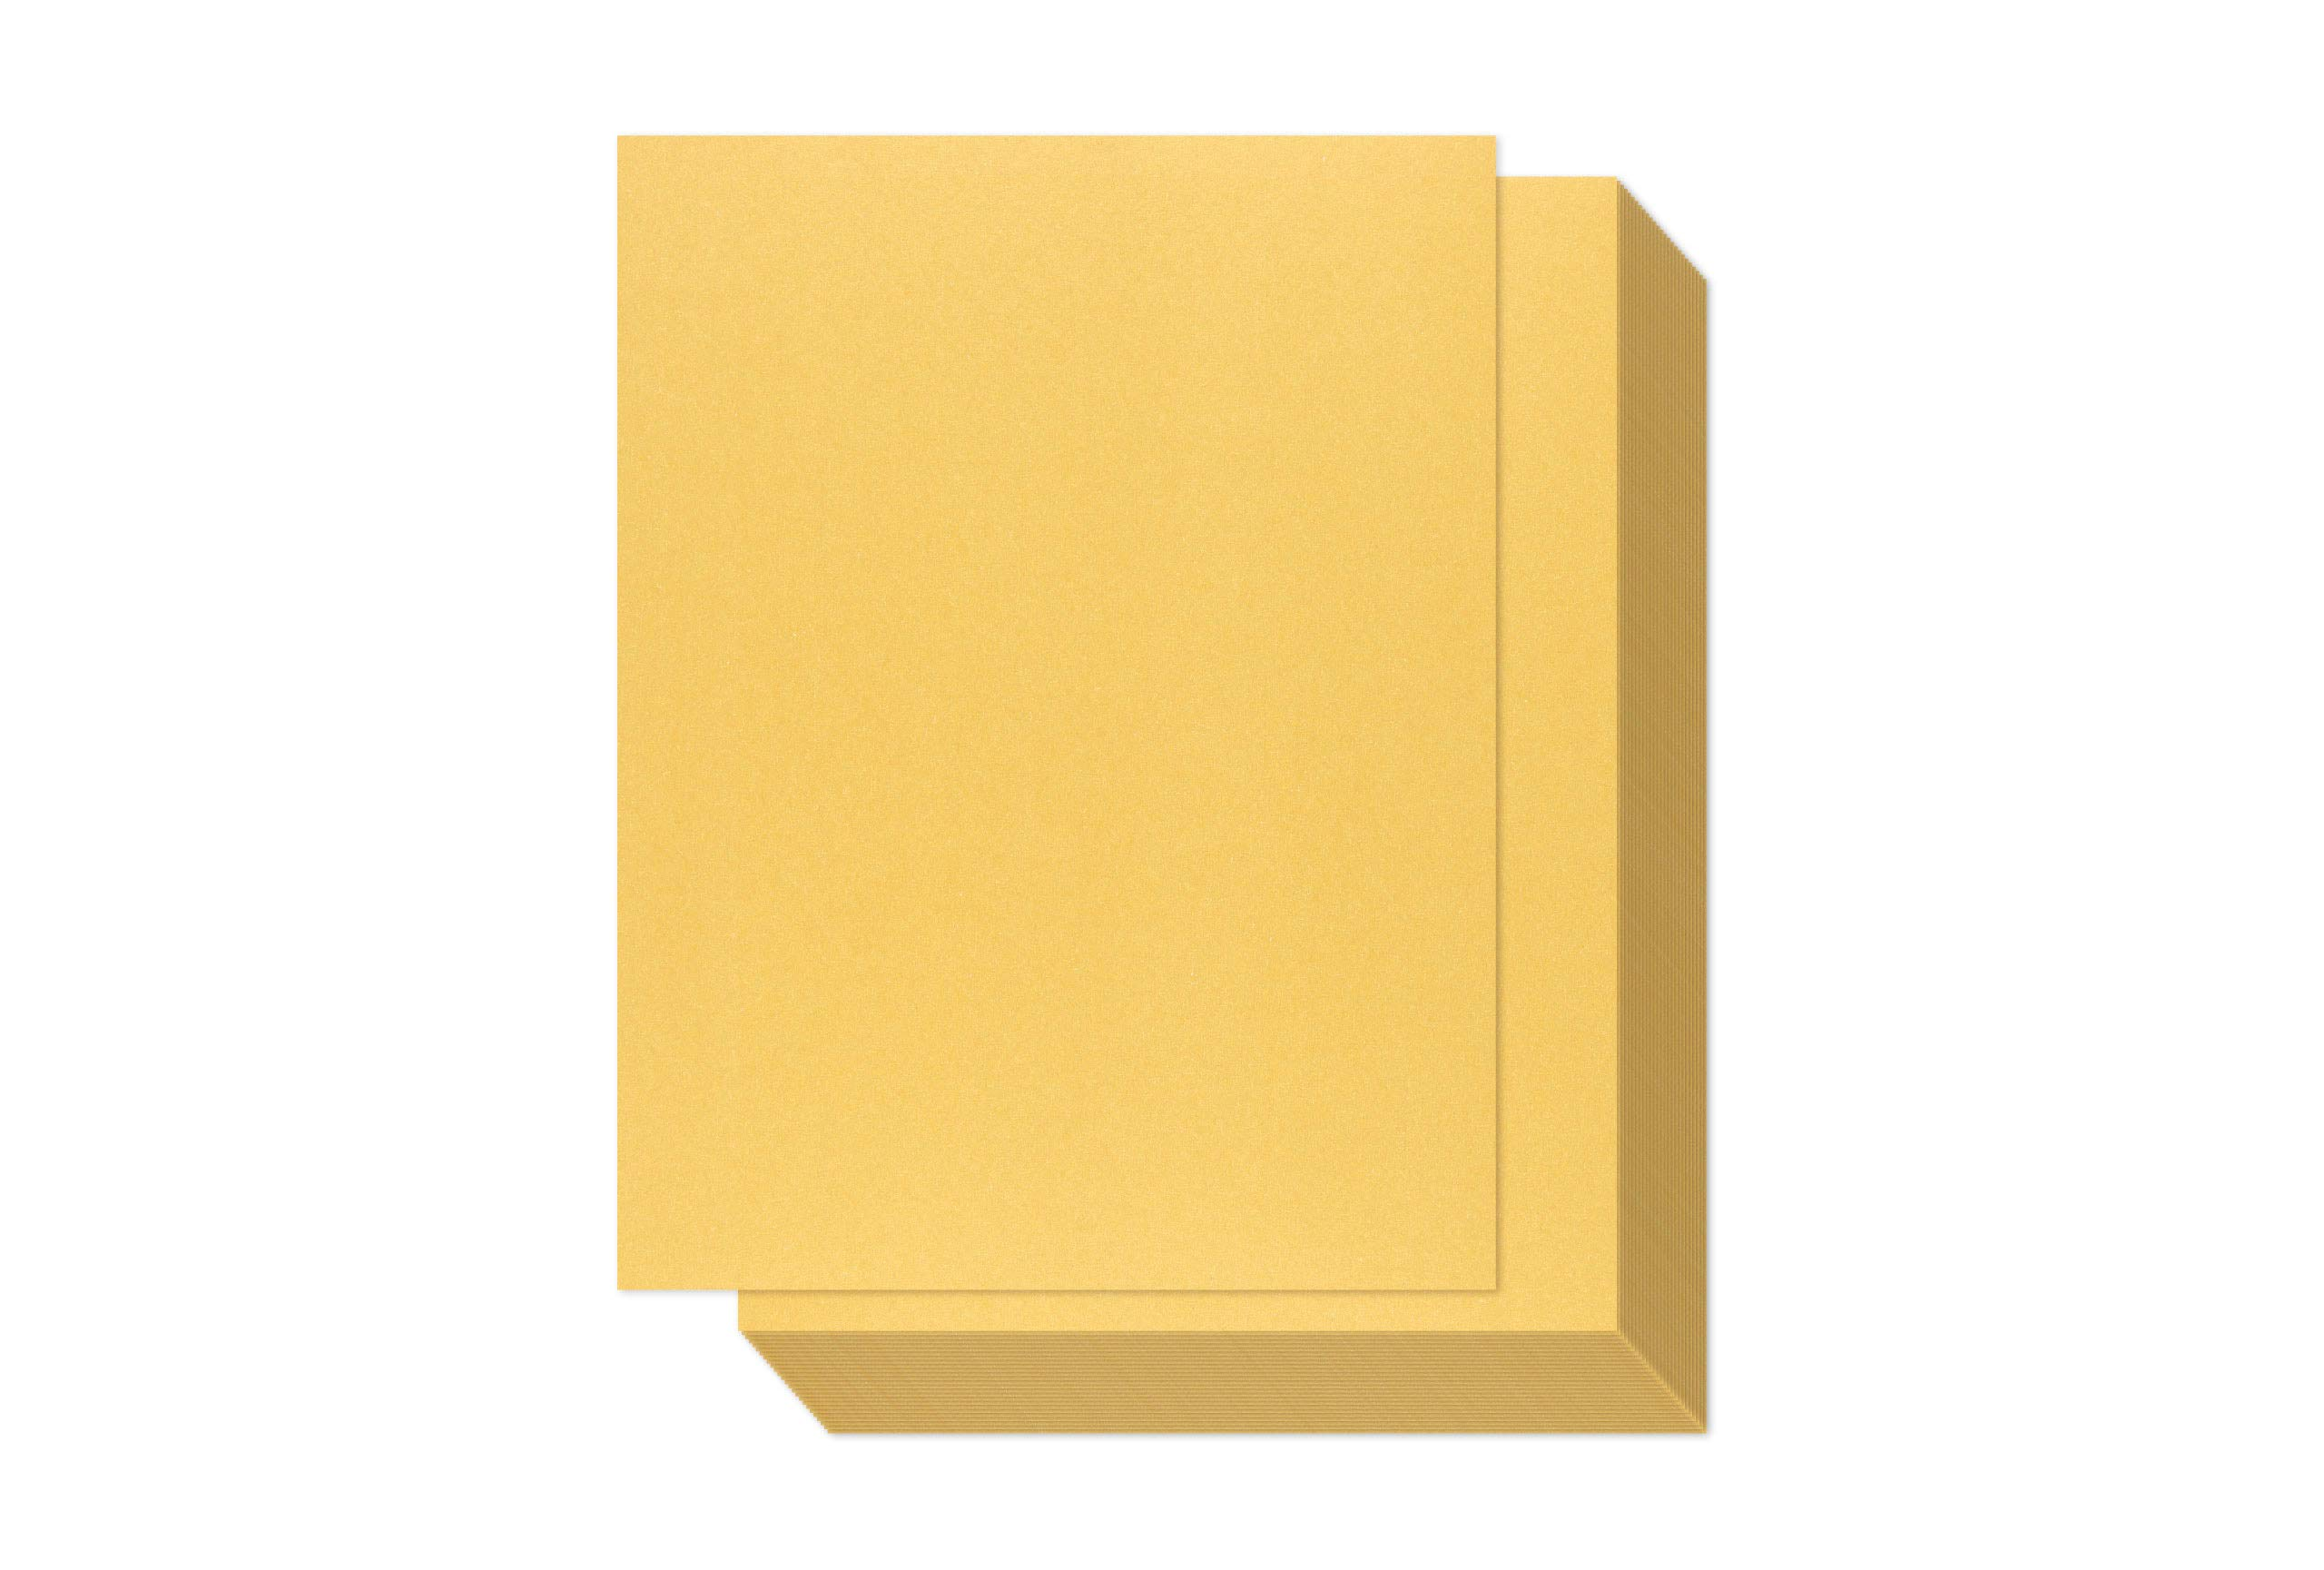 Gold Shimmer Paper - 100-Pack Metallic Cardstock Paper, 92 lb Cover, Double Sided, Printer Friendly - Perfect for Weddings, Birthdays, Craft Use, Letter Size Sheets, 8.5 x 11 Inches